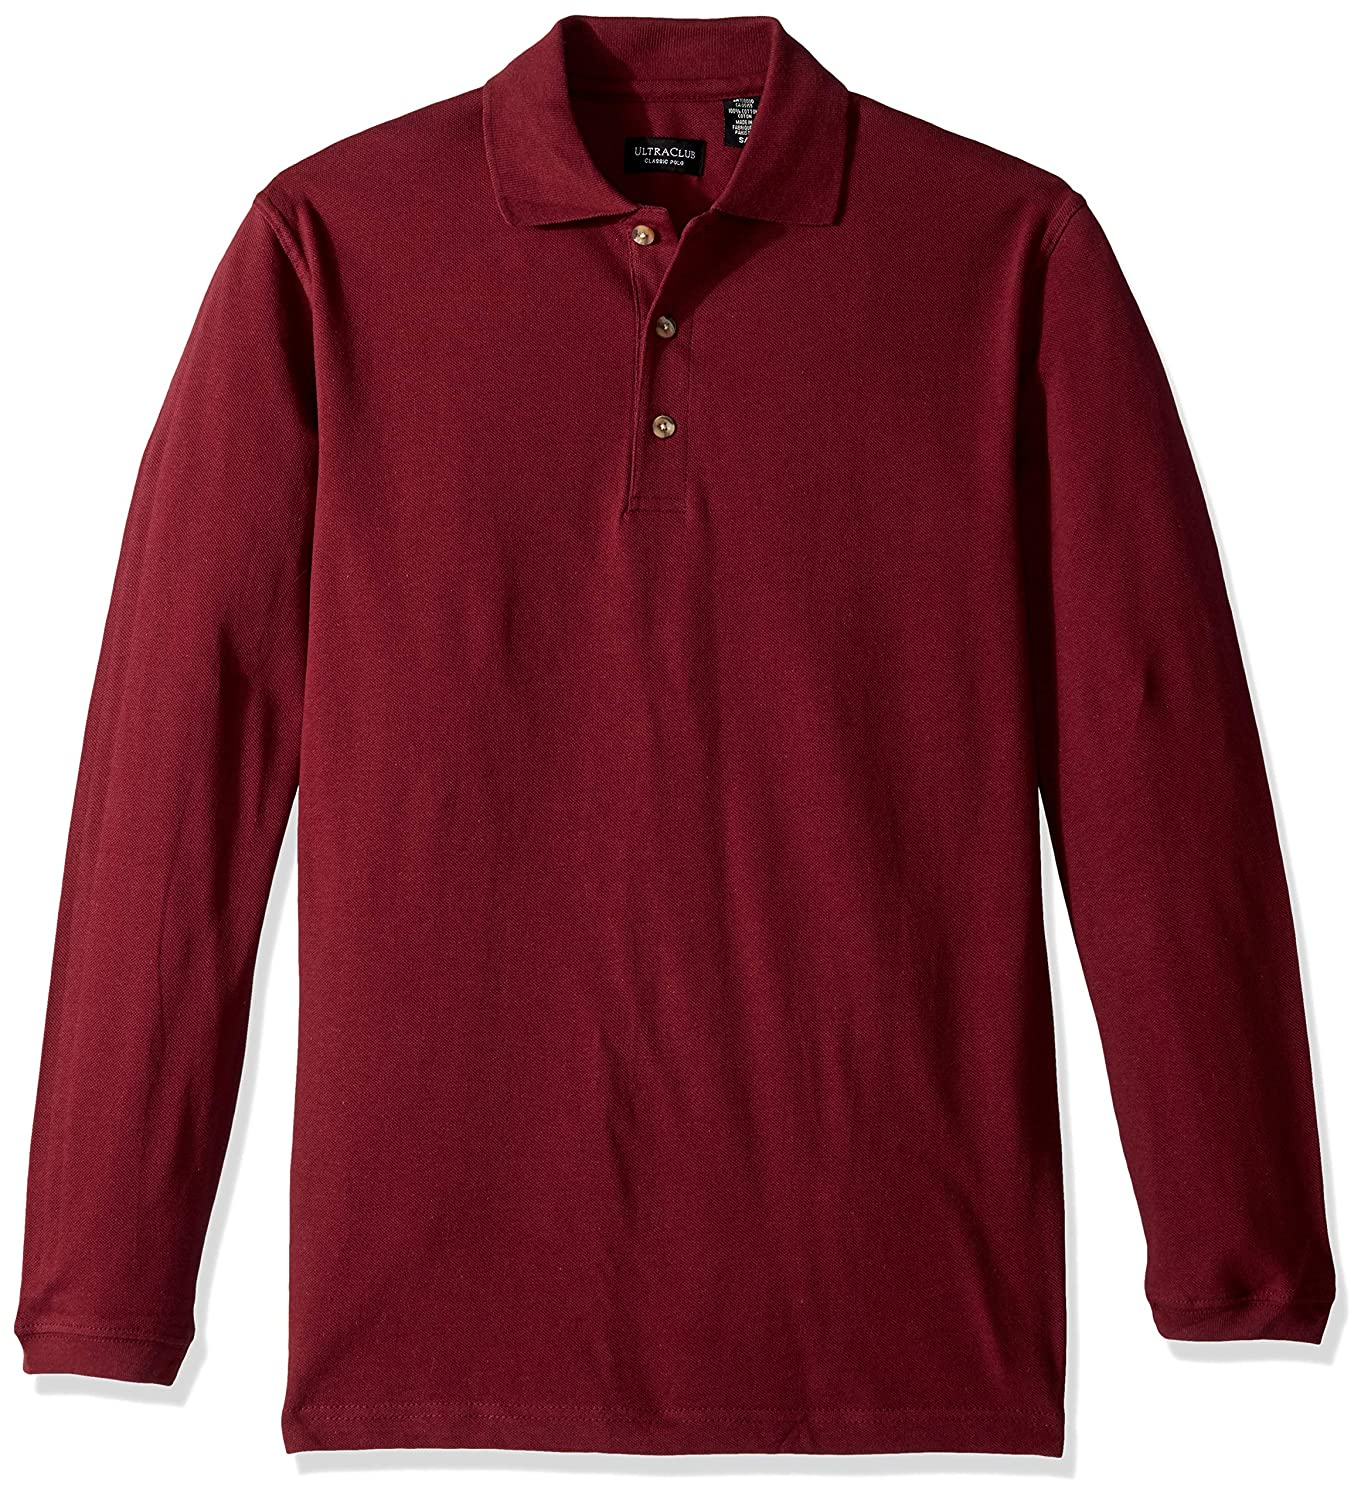 UltraClubs Mens Long-Sleeve Classic Pique Polo